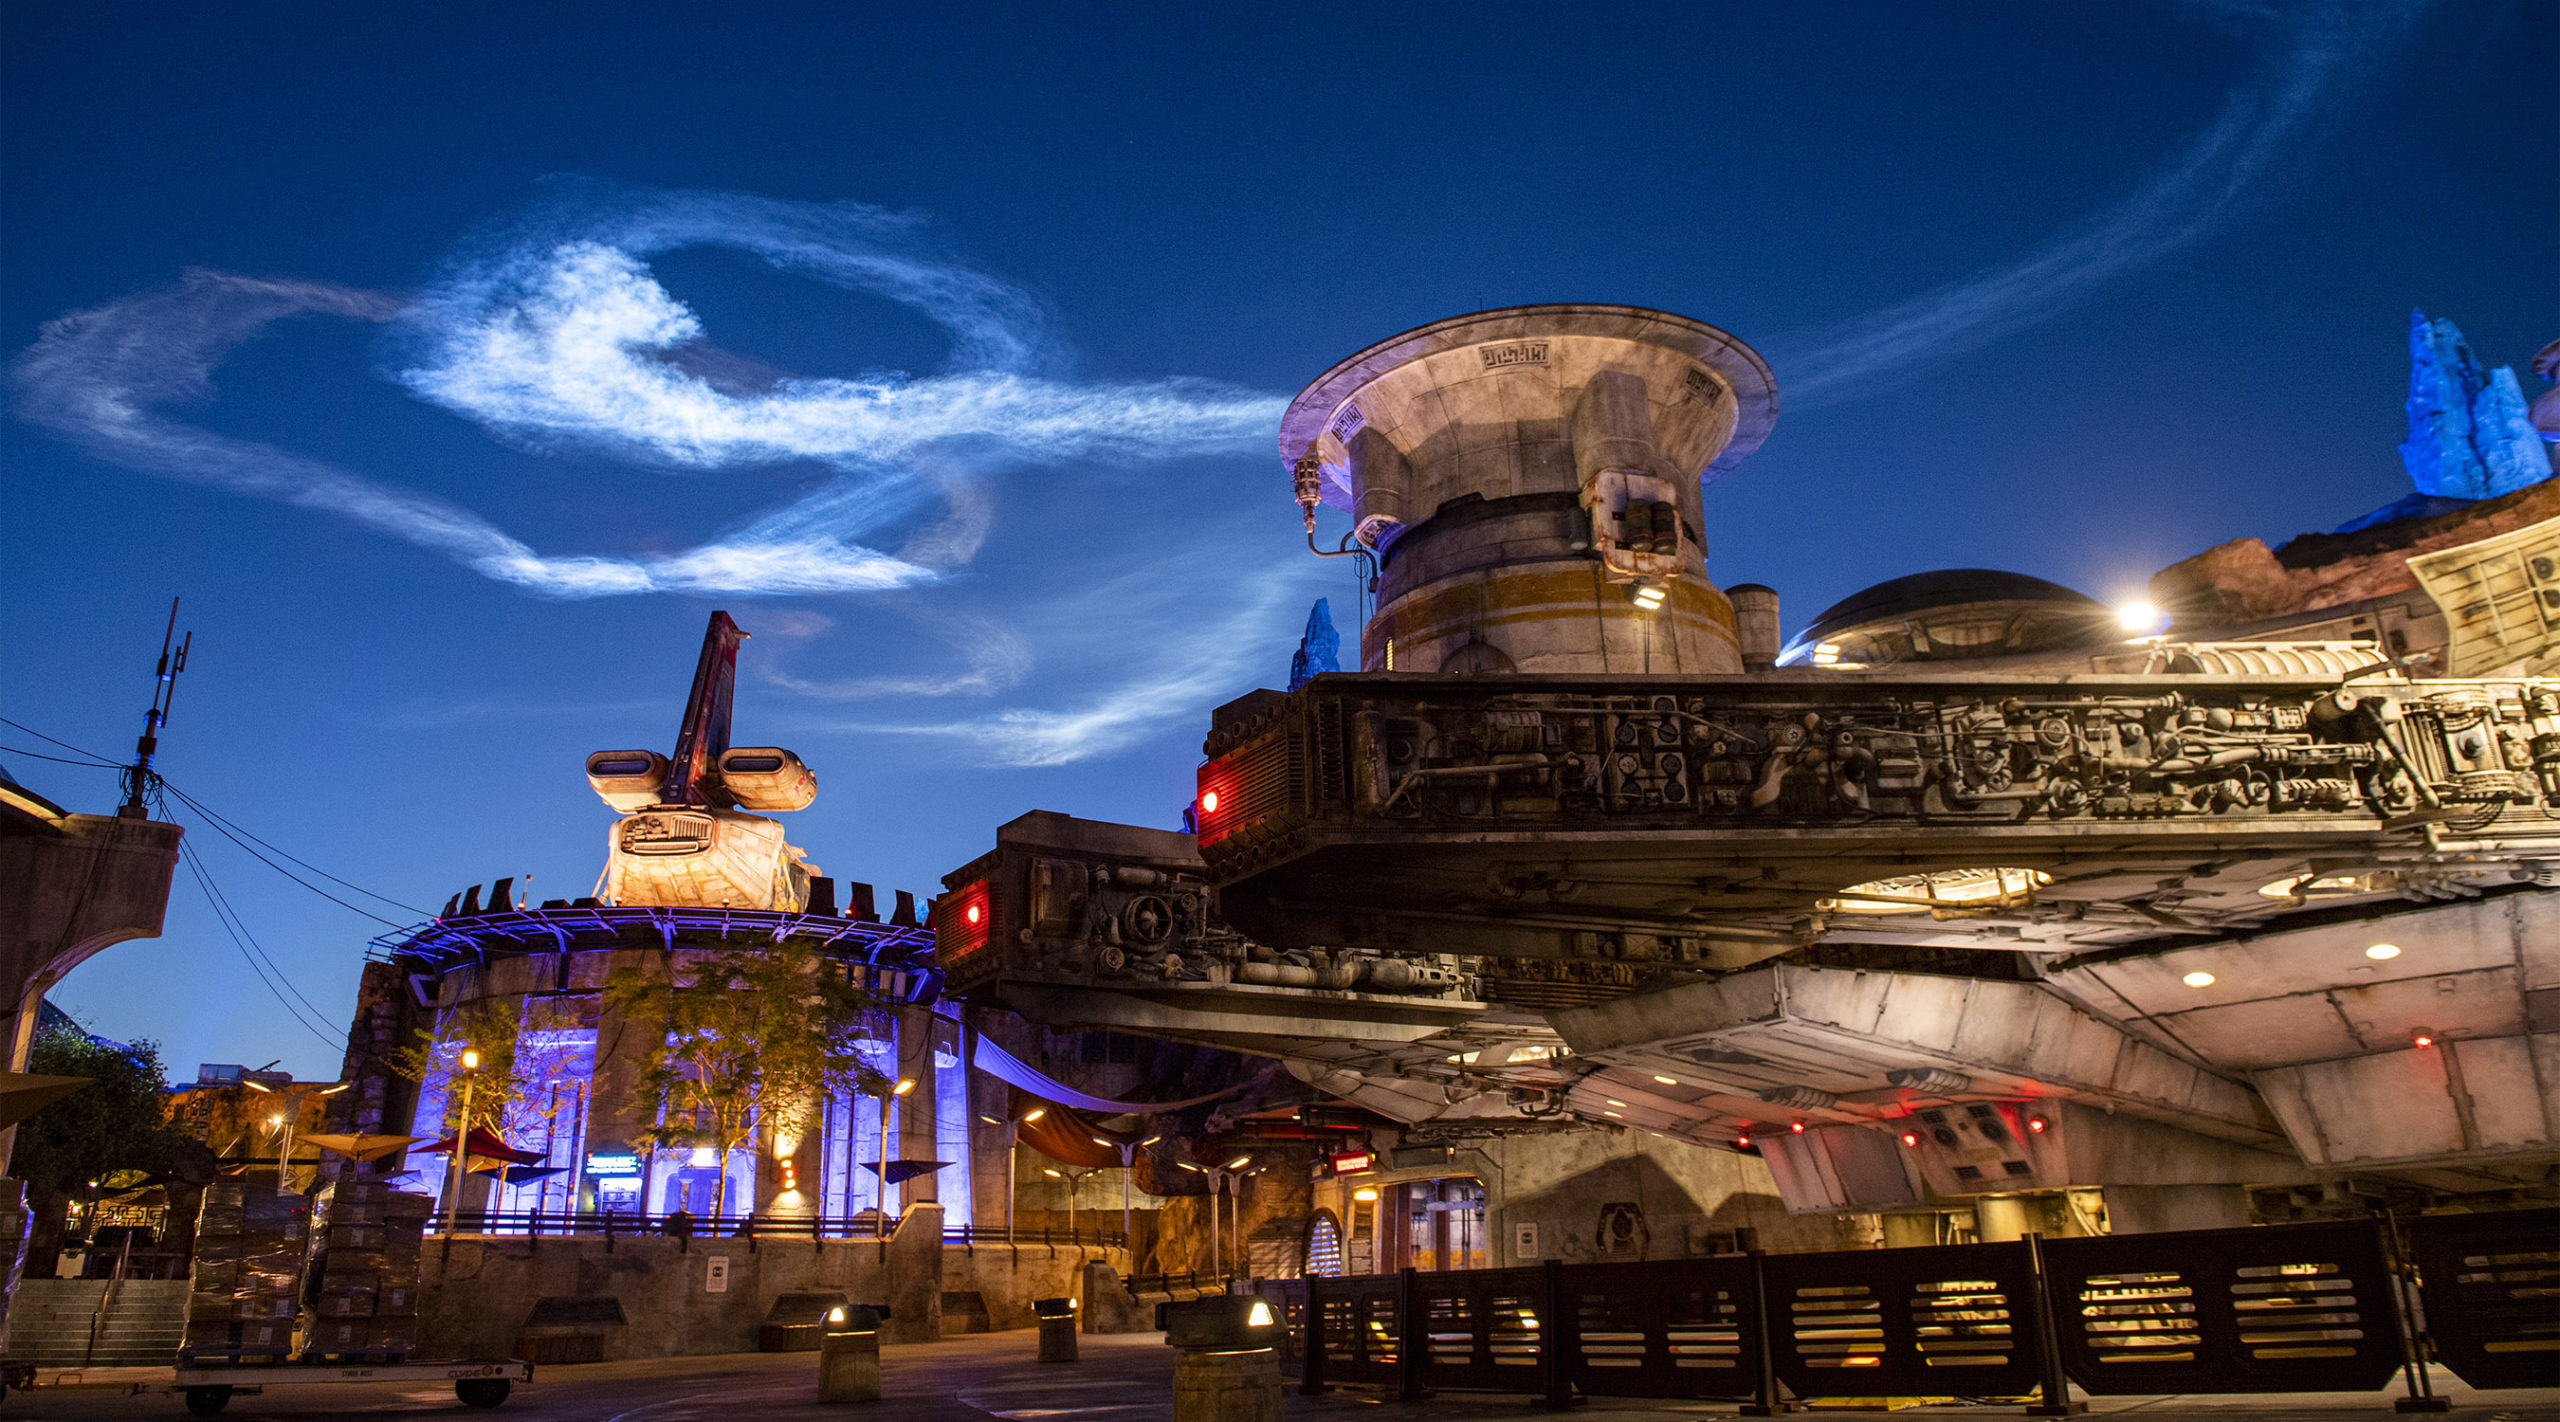 SpaceX's Falcon 9 rocketlLaunch over Star Wars Galaxy's Edge and Space Mountain